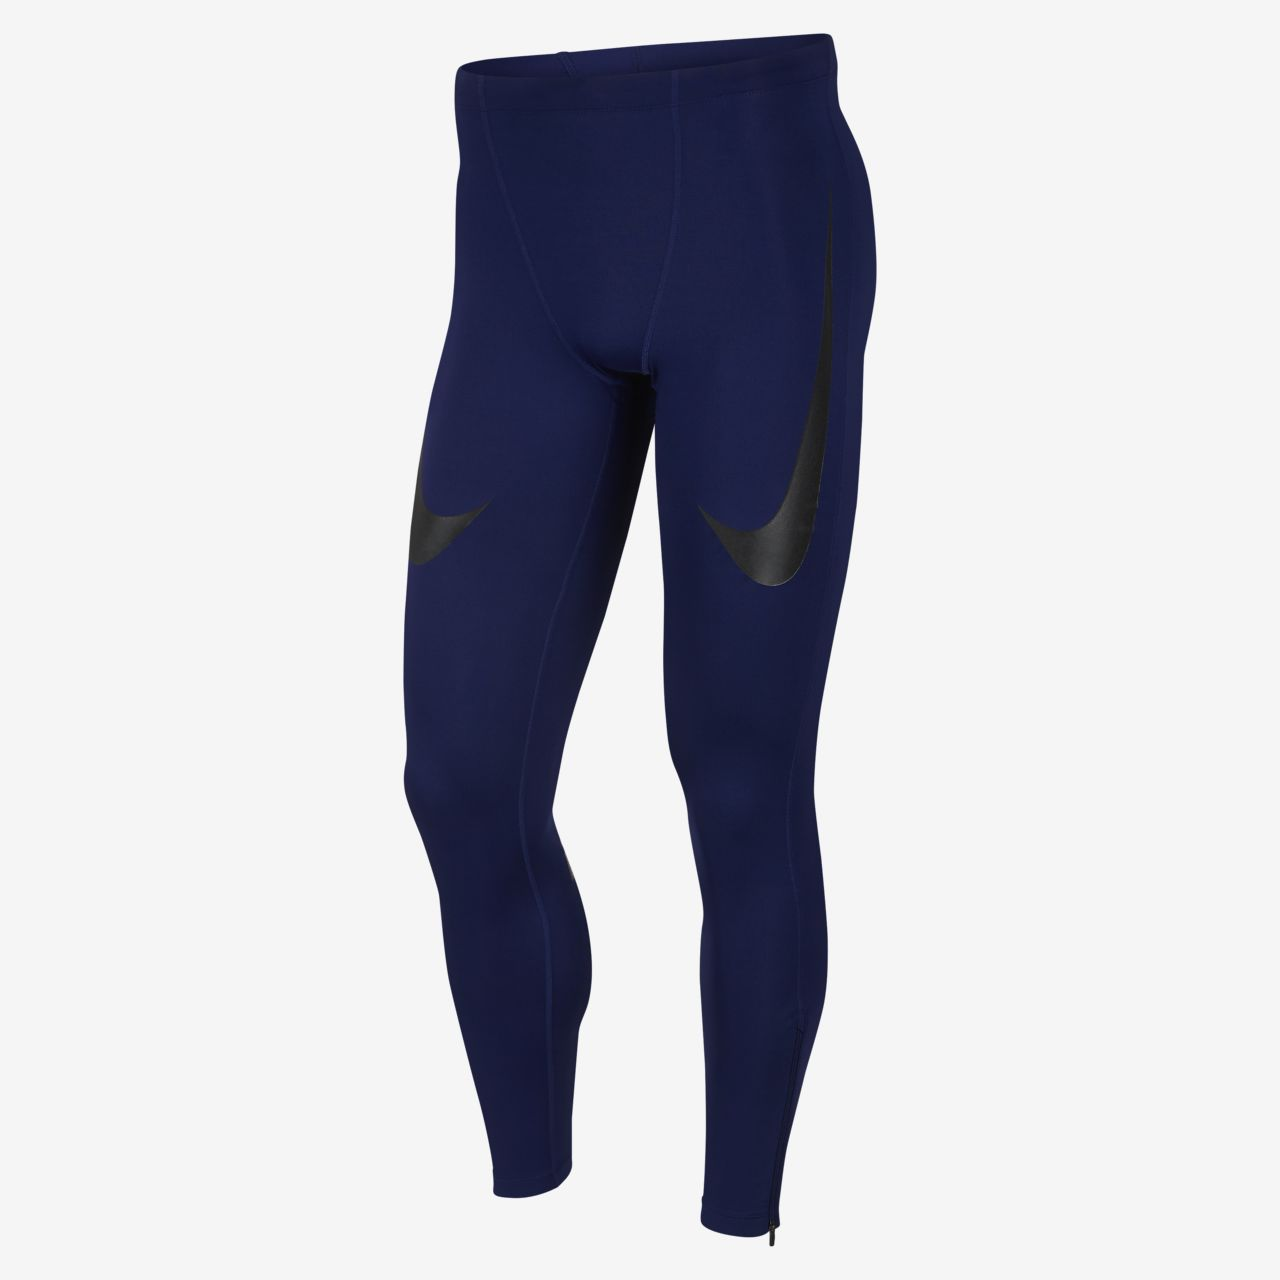 f3ad8a4e032d1 Nike Men's Running Tights. Nike.com IE